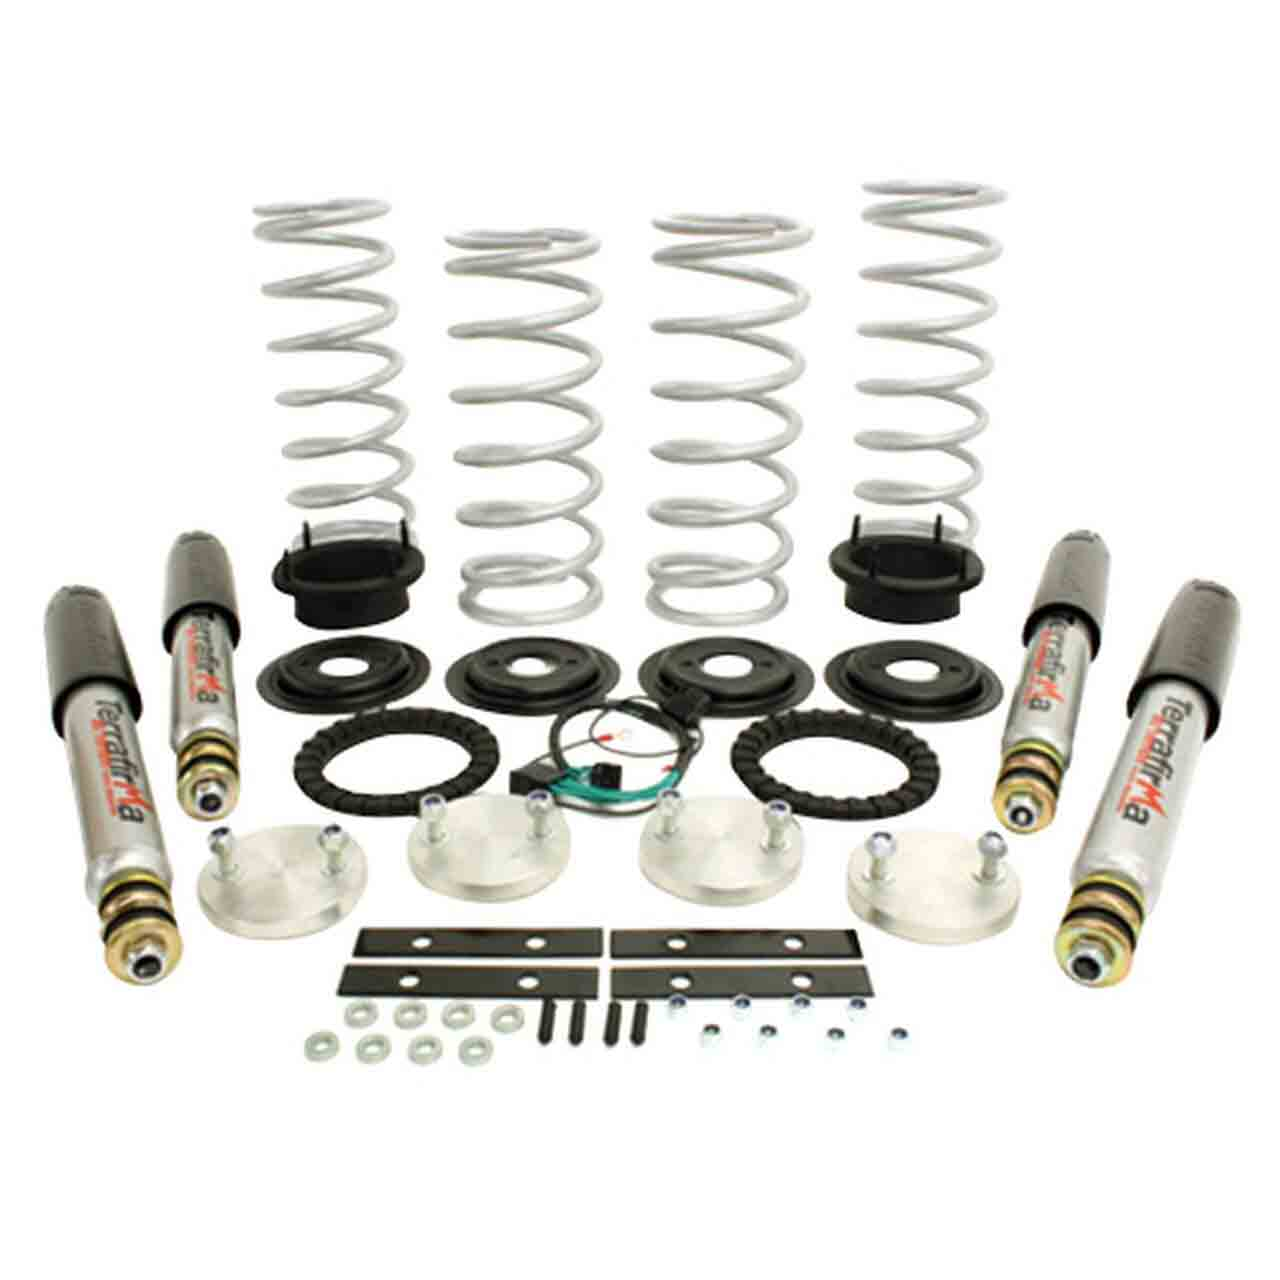 Range Rover P38 Heavy Duty 1 Lift Incluso Ammortizzatore All Terrain Shock Absorber Air To Coil Kit Conversione Terrafirma Range Rover P38 Land Rover GR2-07193